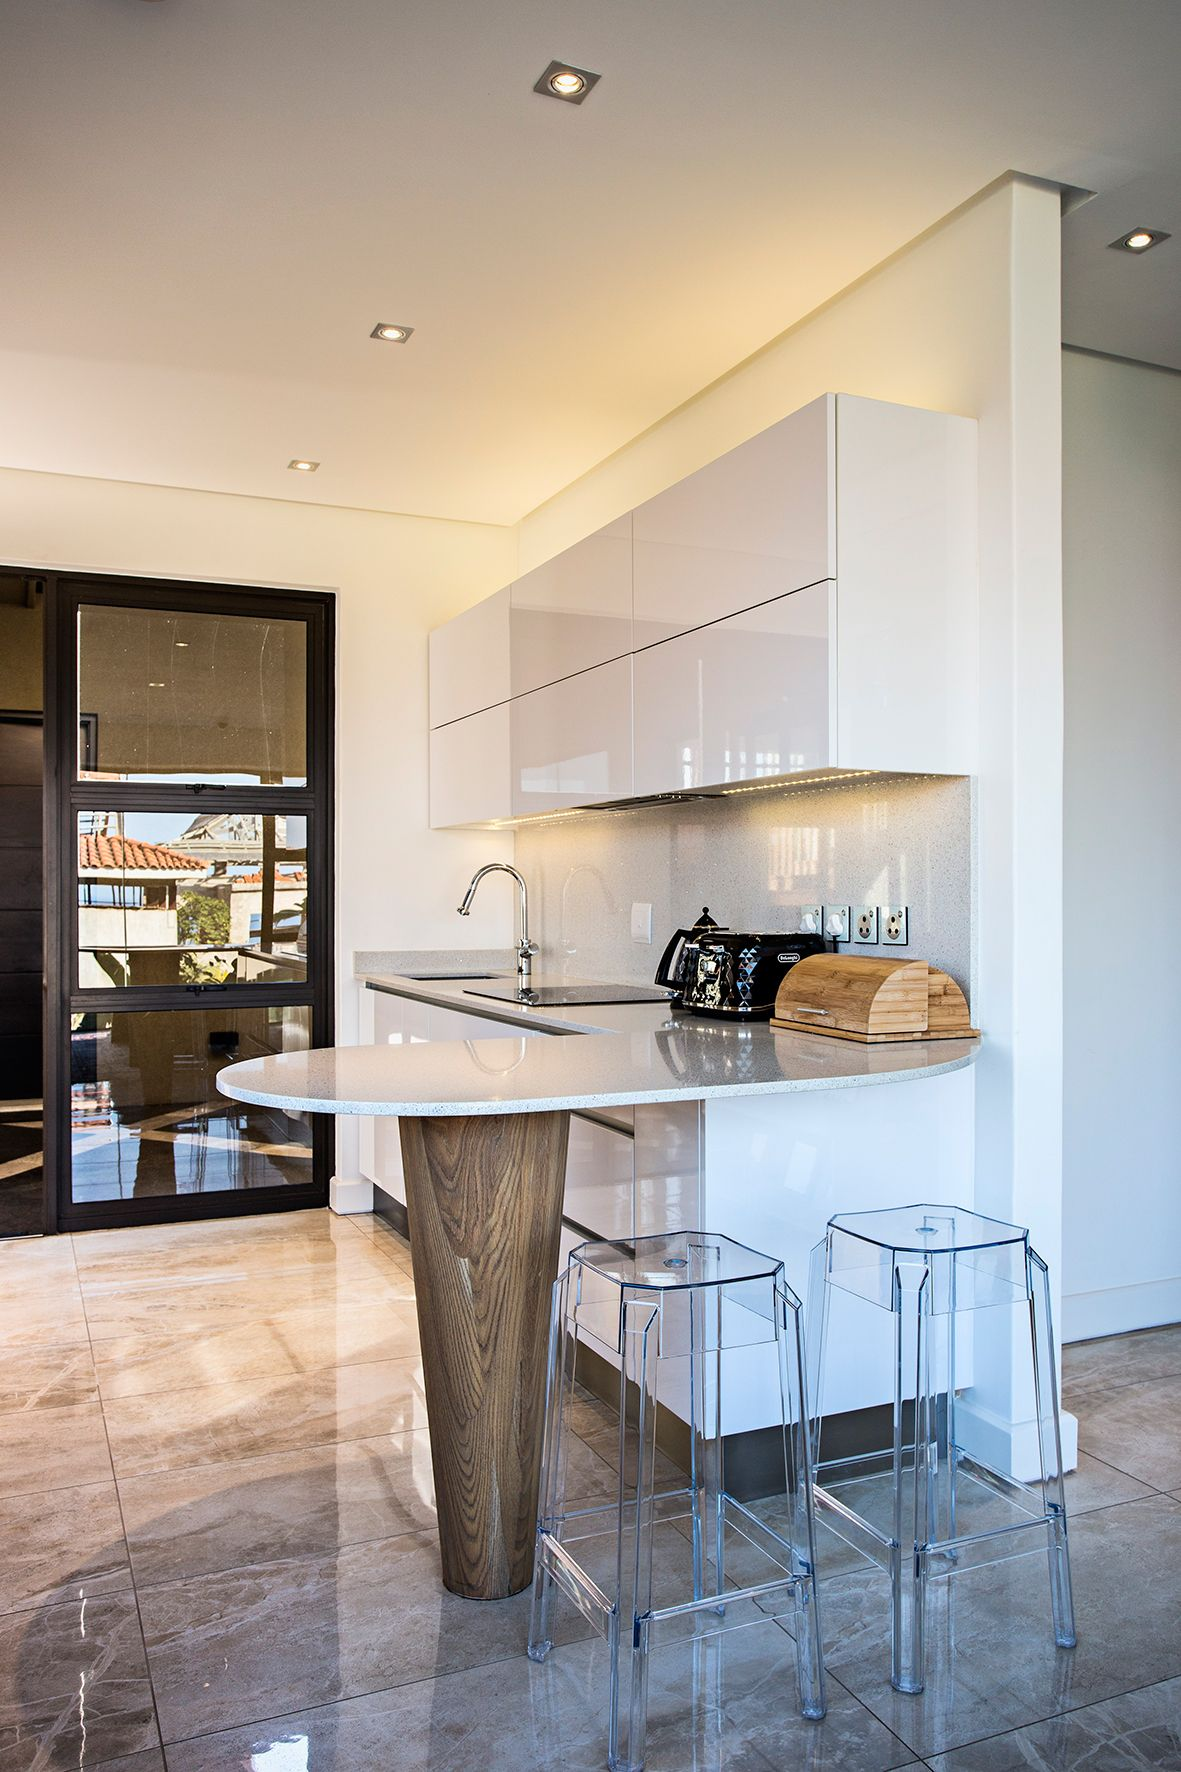 White Star Caesarstone was used for the curved breakfast